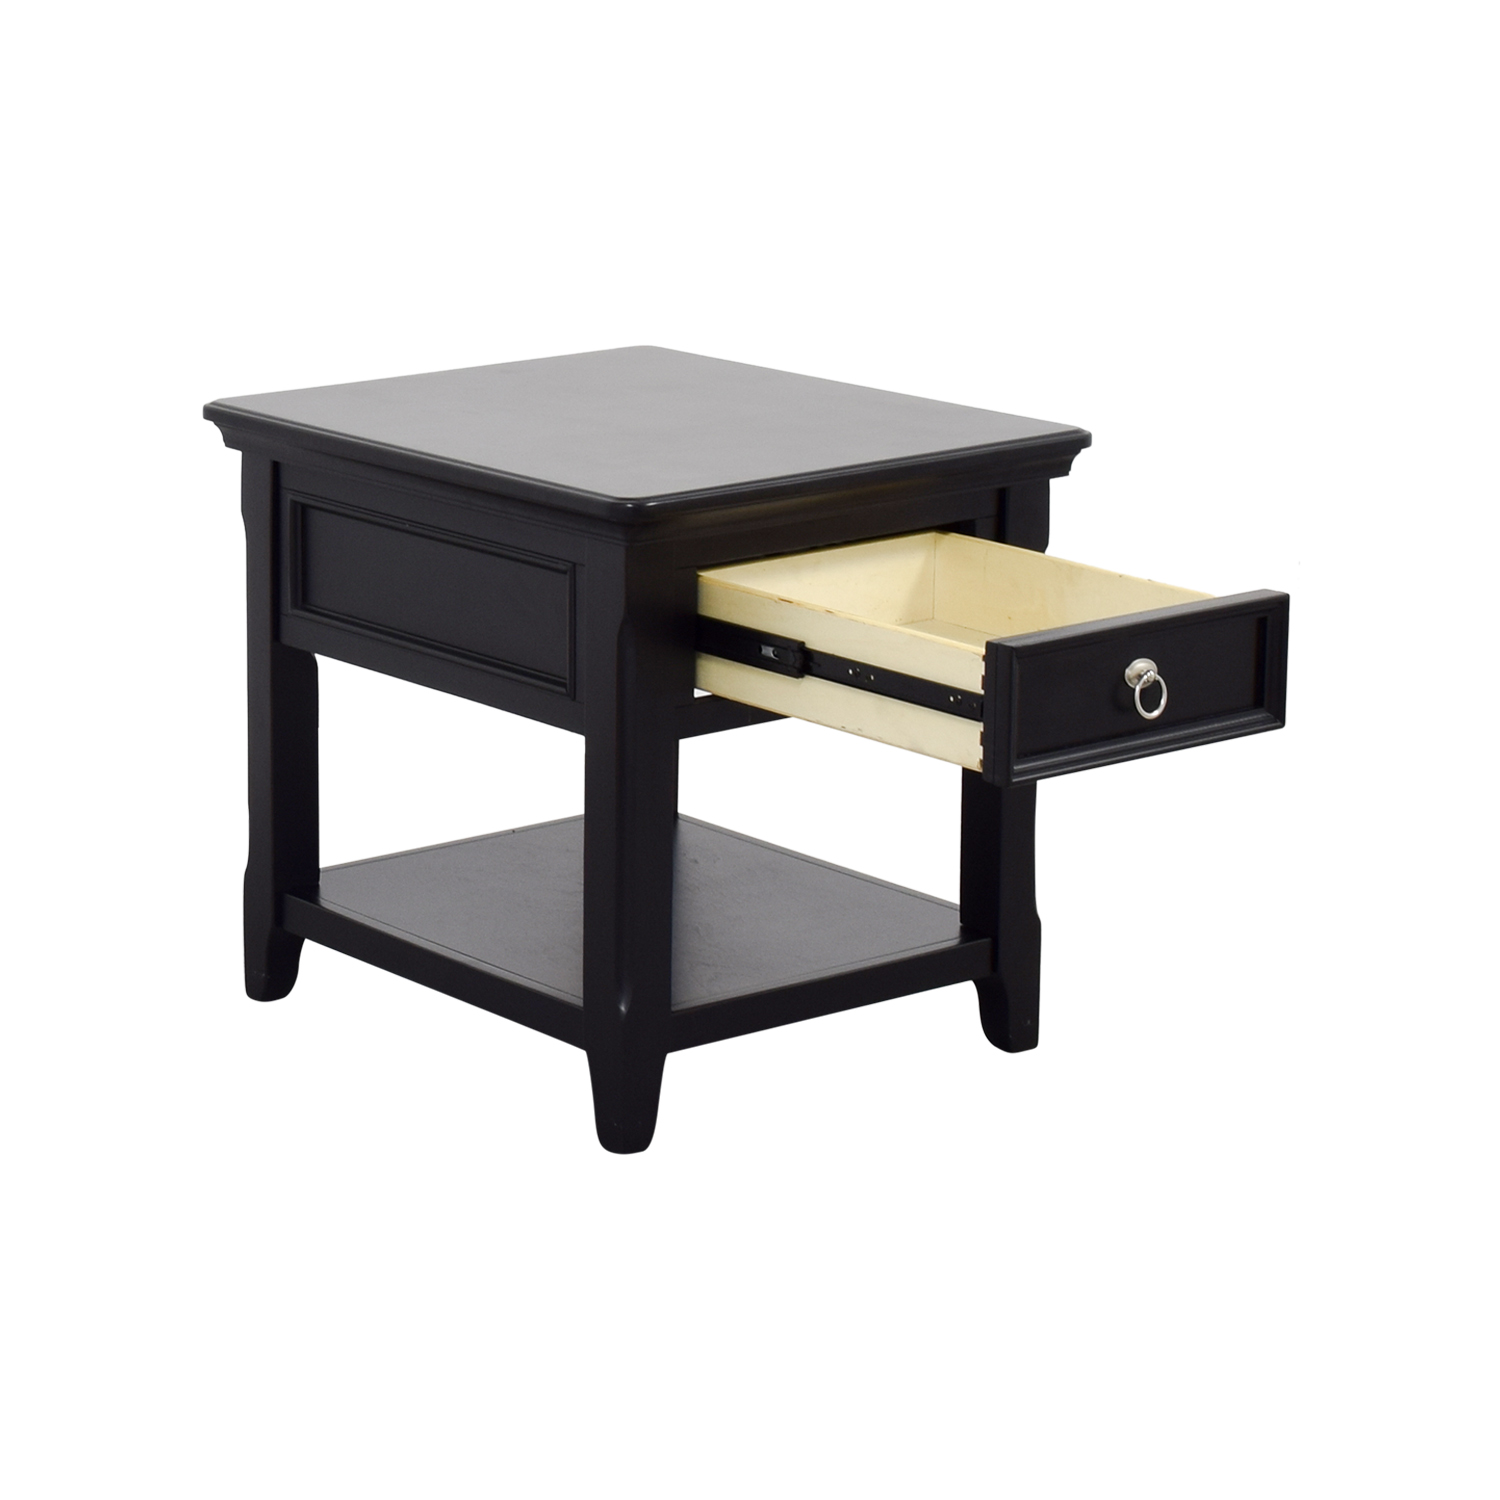 50 Off Ashley Furniture Ashley Furniture Rectangular End Table Tables